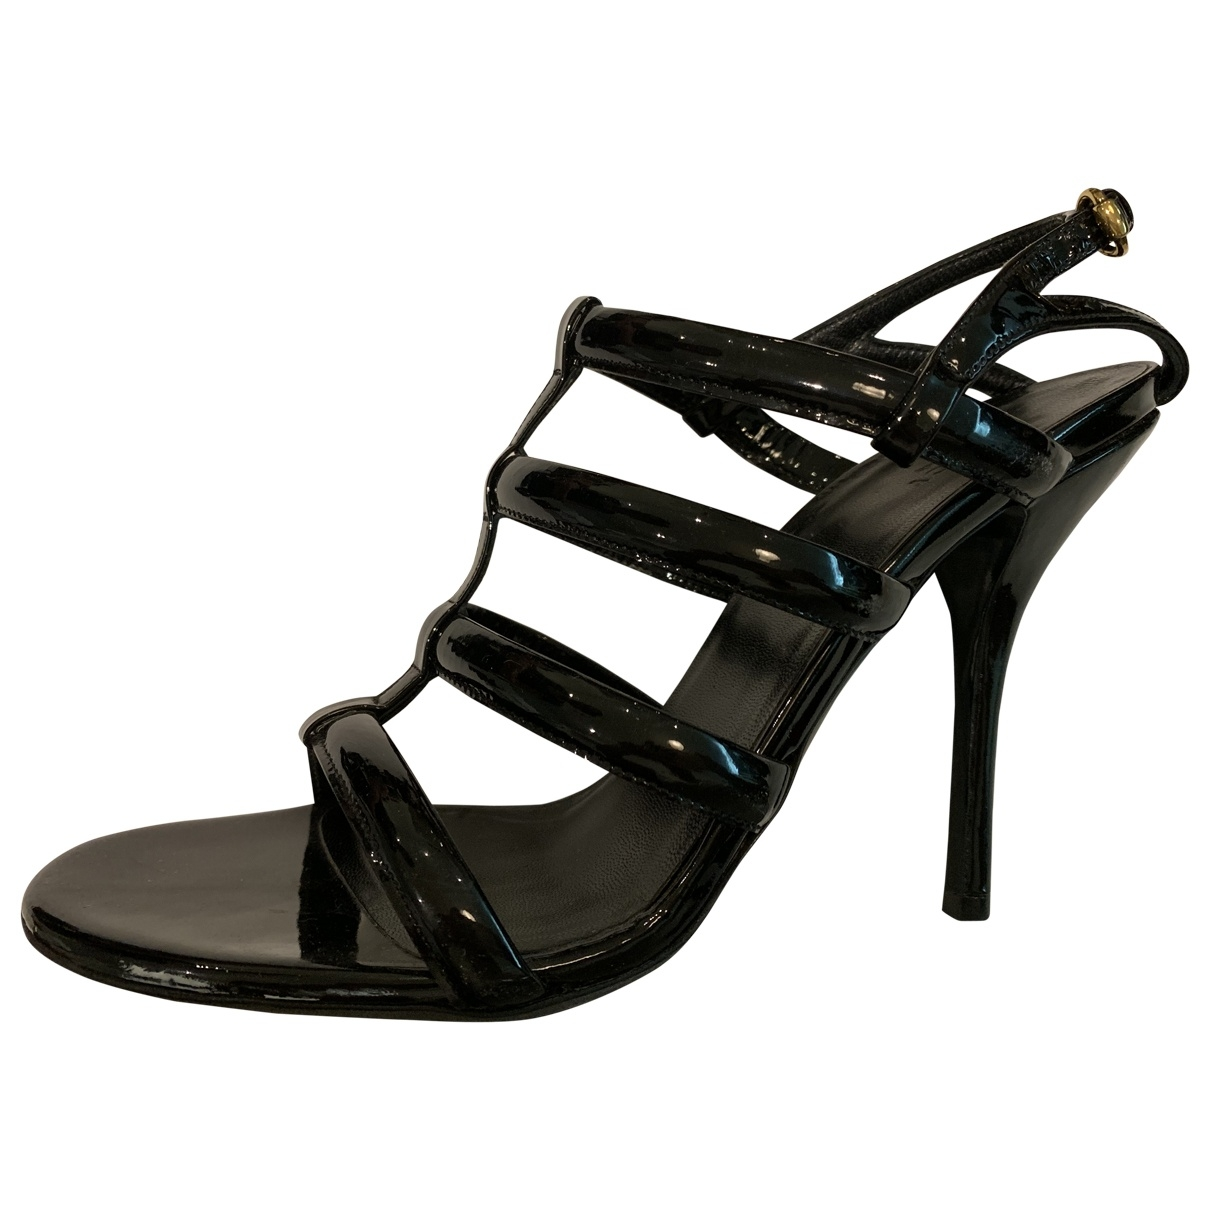 Gucci \N Black Patent leather Sandals for Women 39 EU